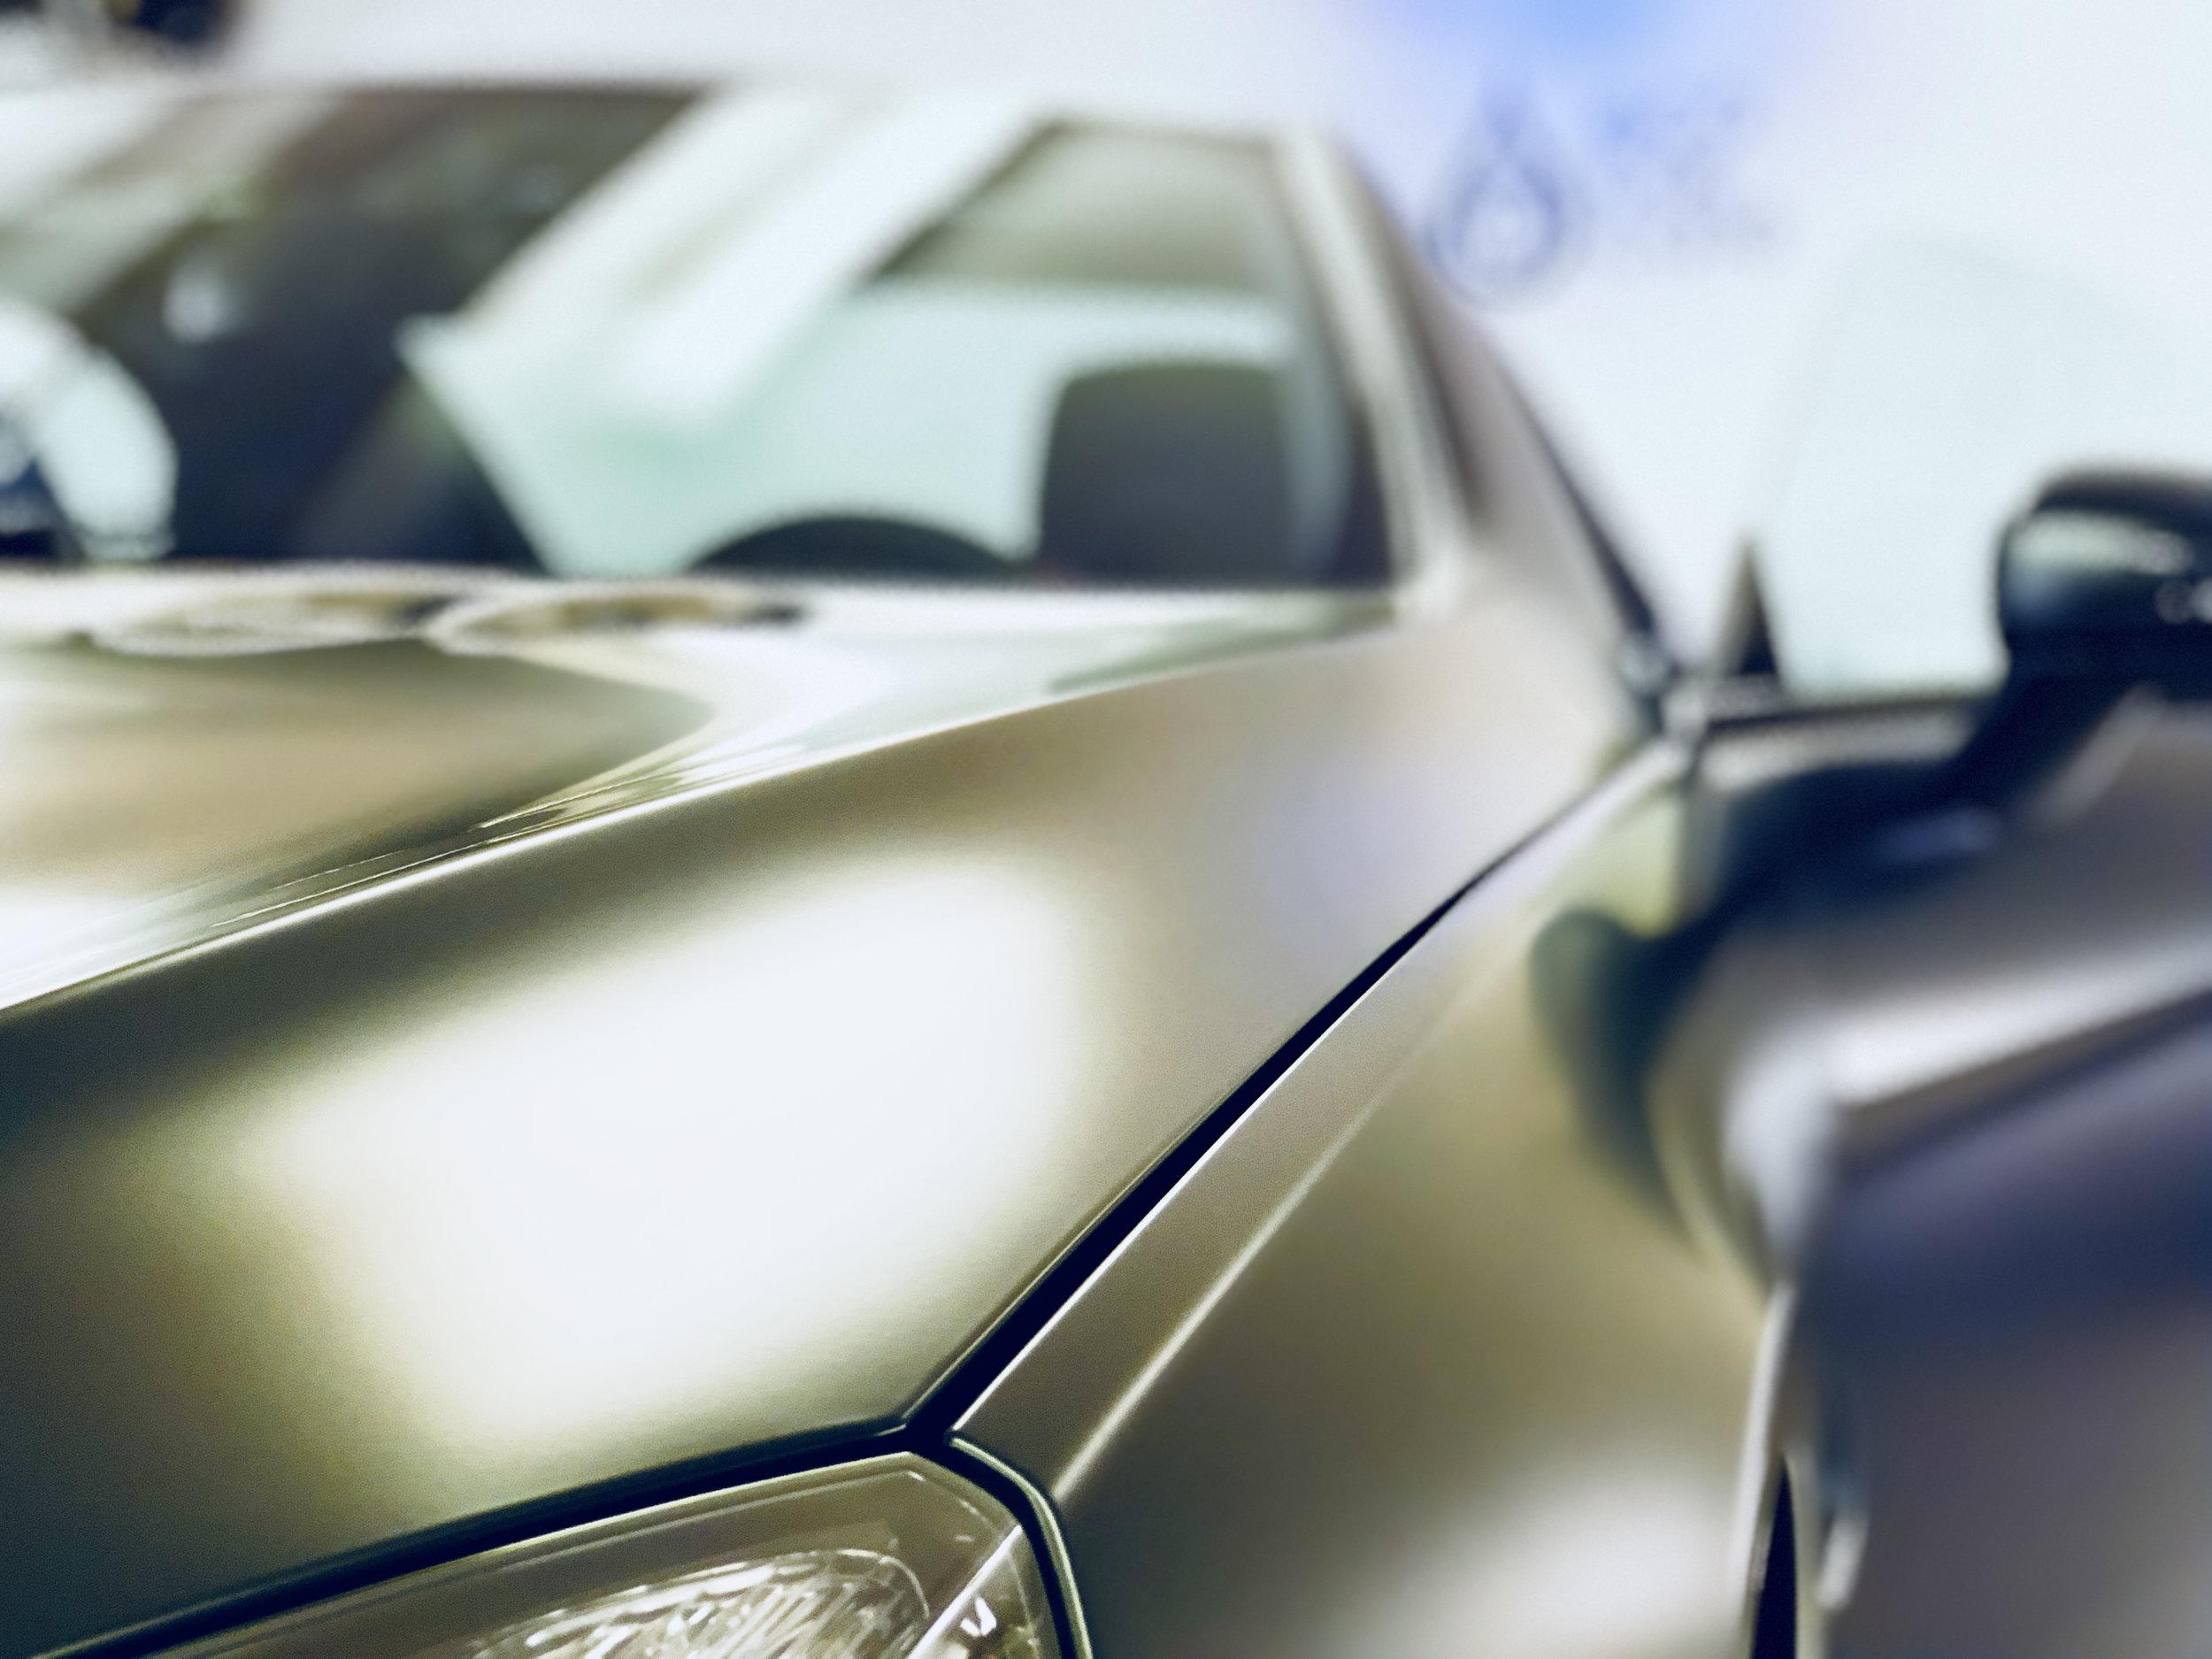 The best car wash near you with amazing steam cleaning technology